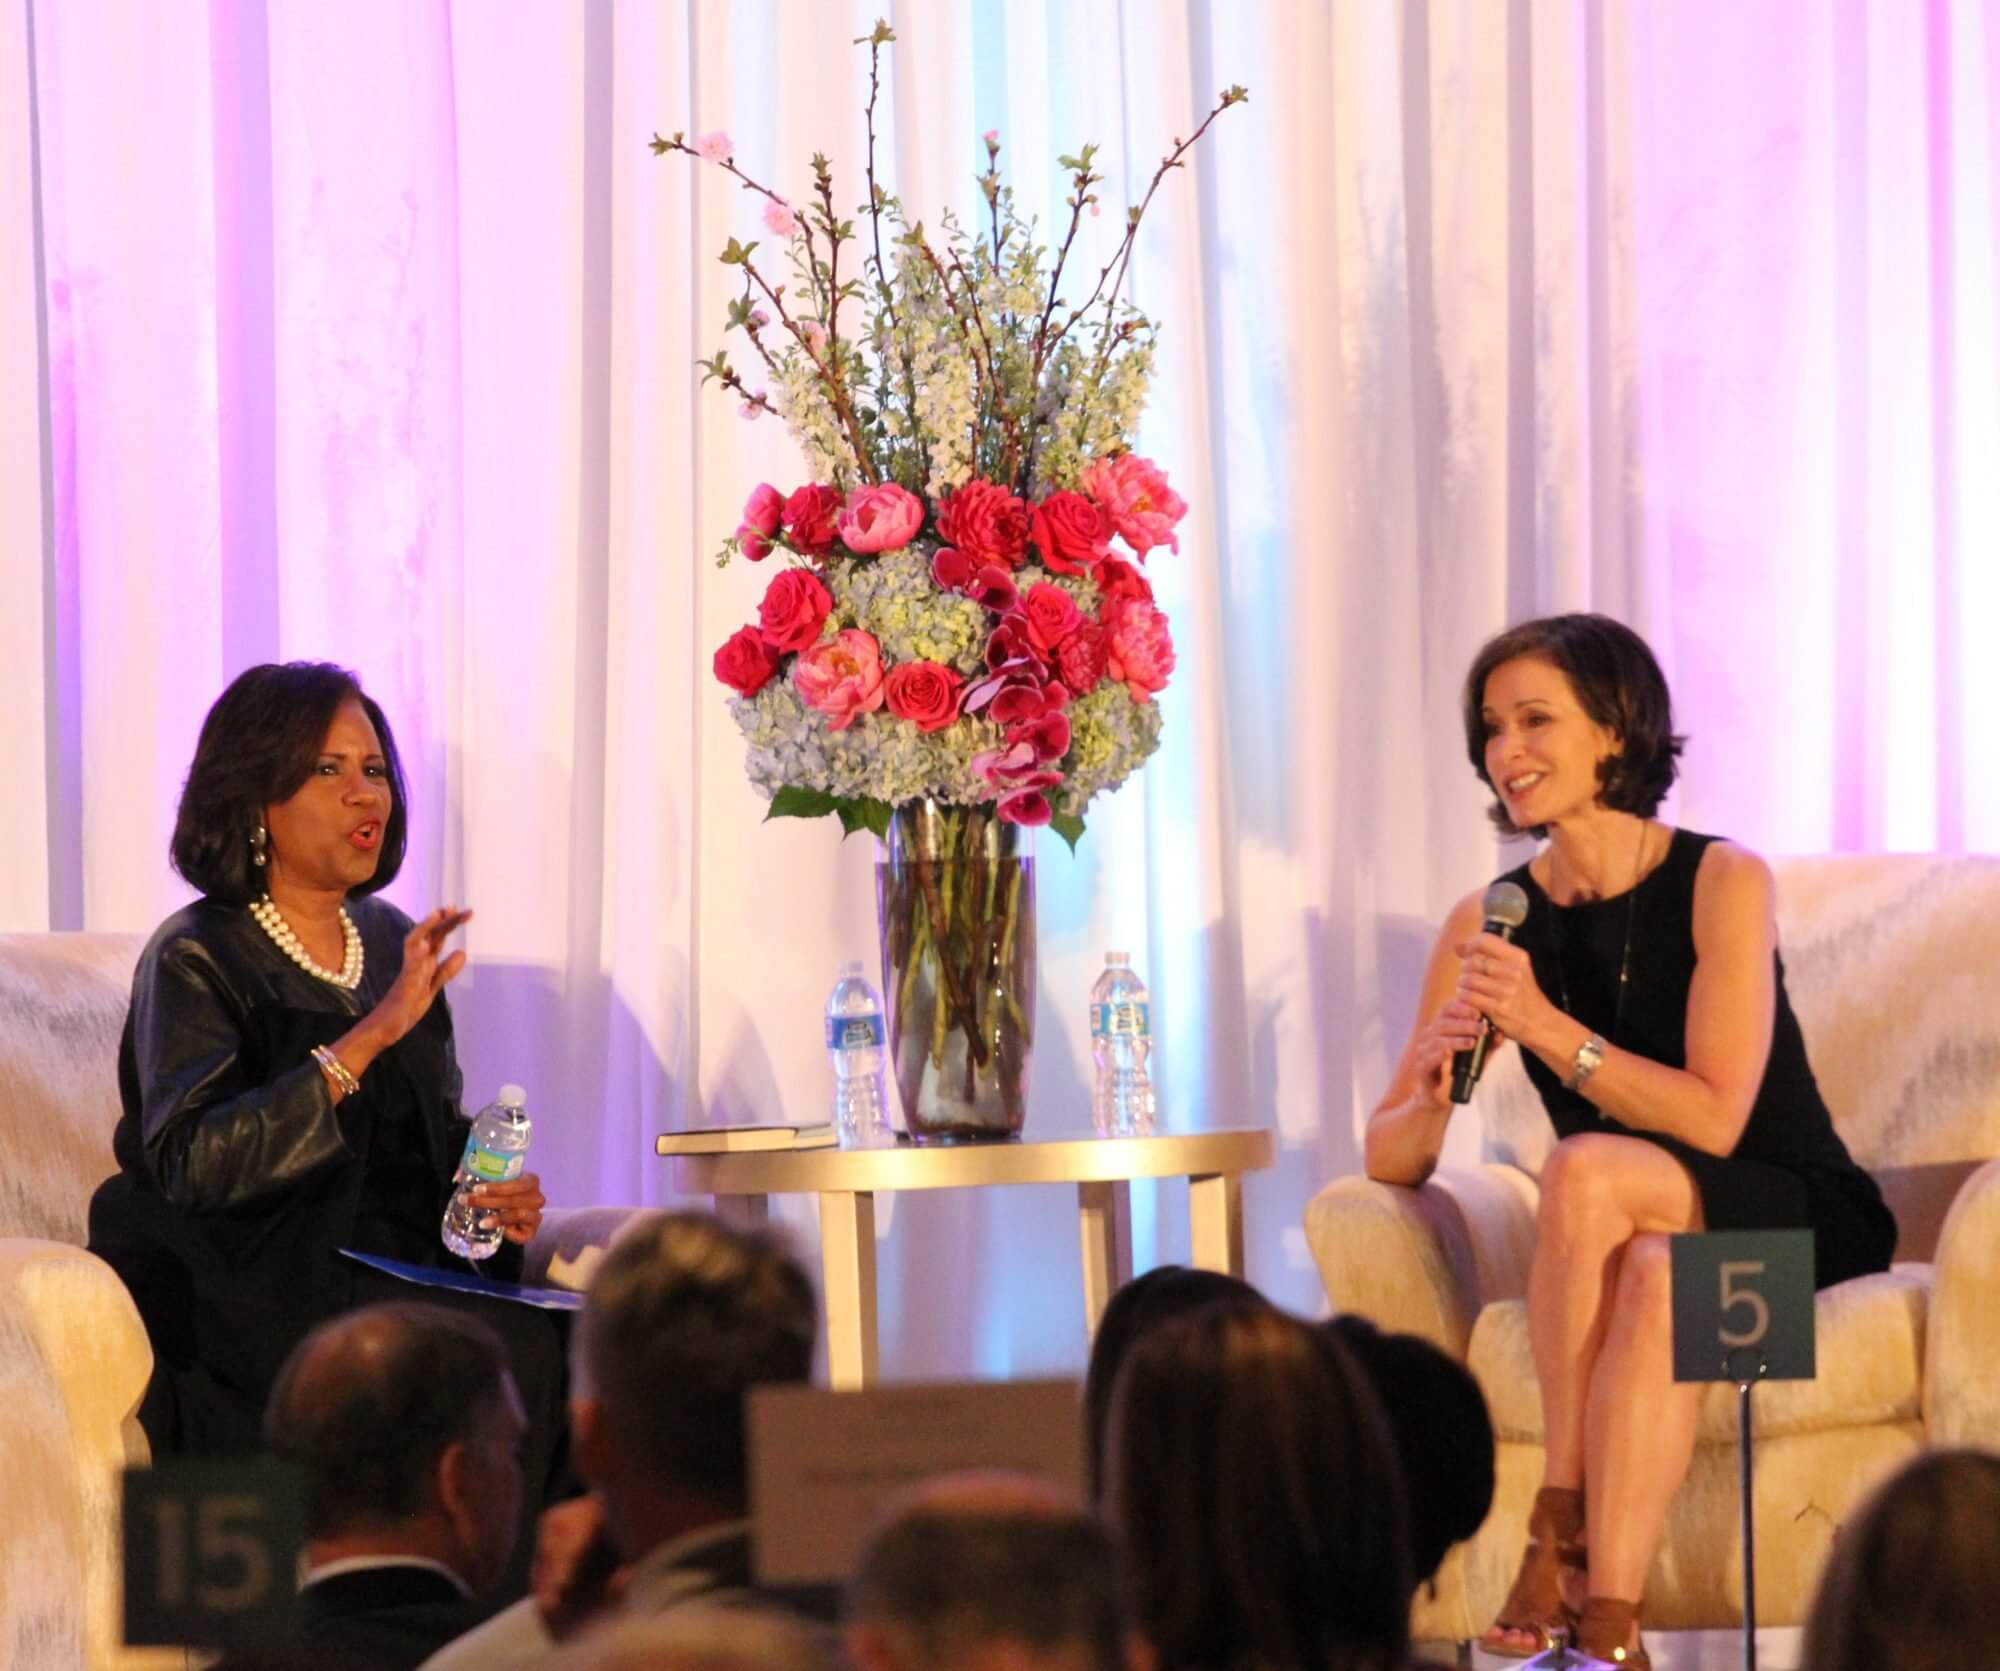 ABC 13 news anchor Melanie Lawson interviews award-winning correspondent and anchor Elizabeth Vargas, currently co-anchor of ABC's 20/20. (Photo Credit: Jenny Antill)